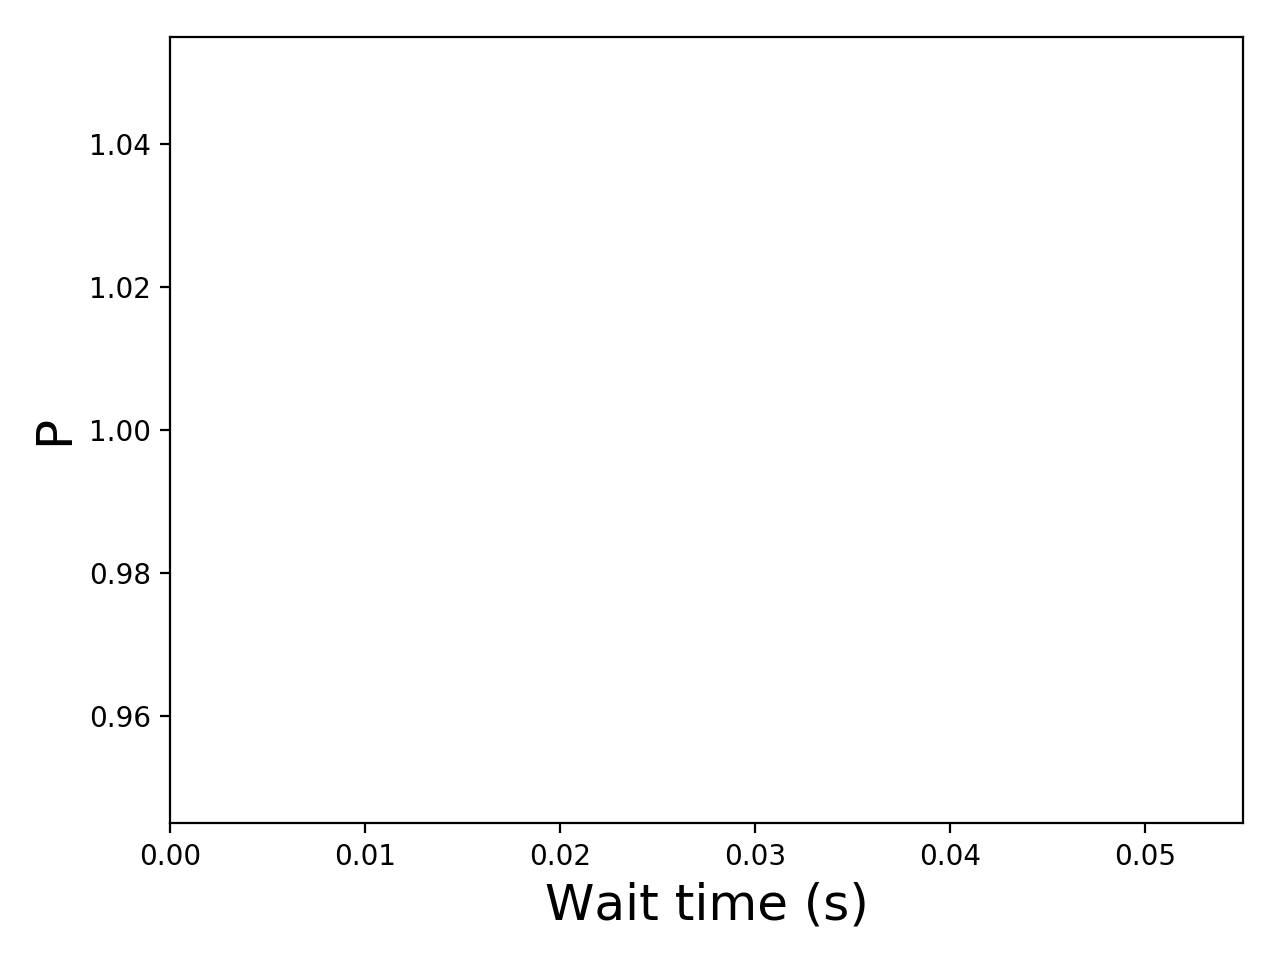 Task wait time CDF graph for the askalon-new_ee61 trace.